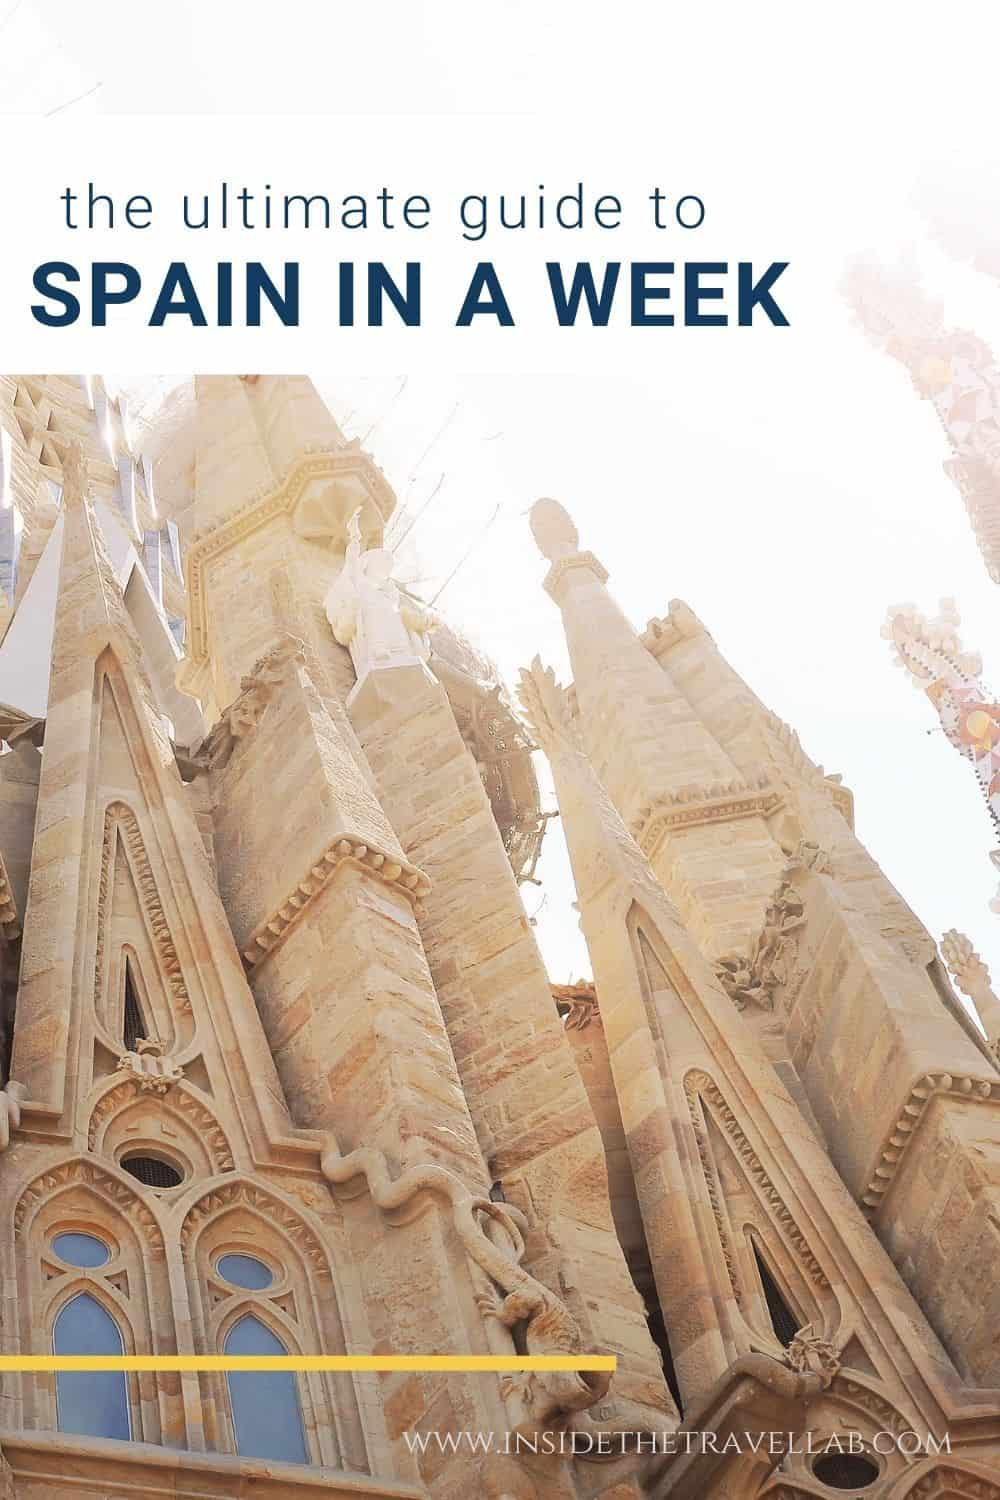 How to see Spain in a week cover image